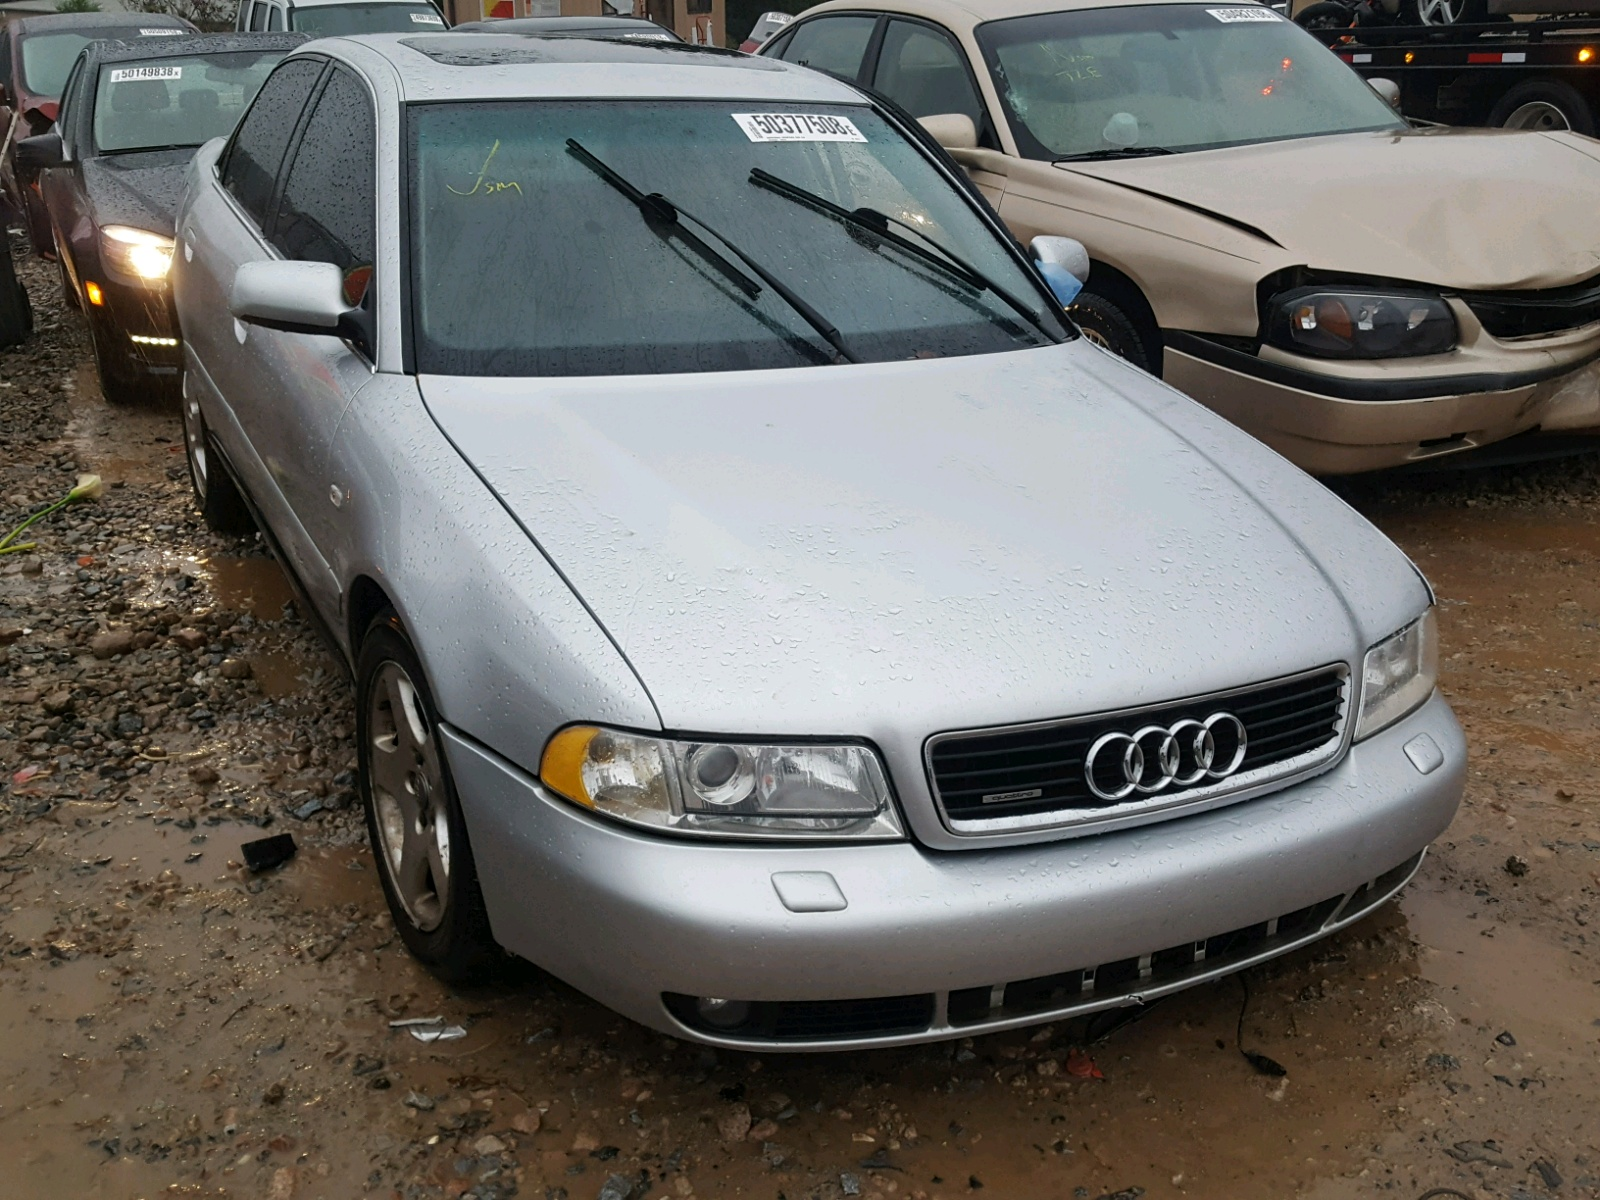 Salvage 1999 Audi A4 2.8 QUATTRO for sale